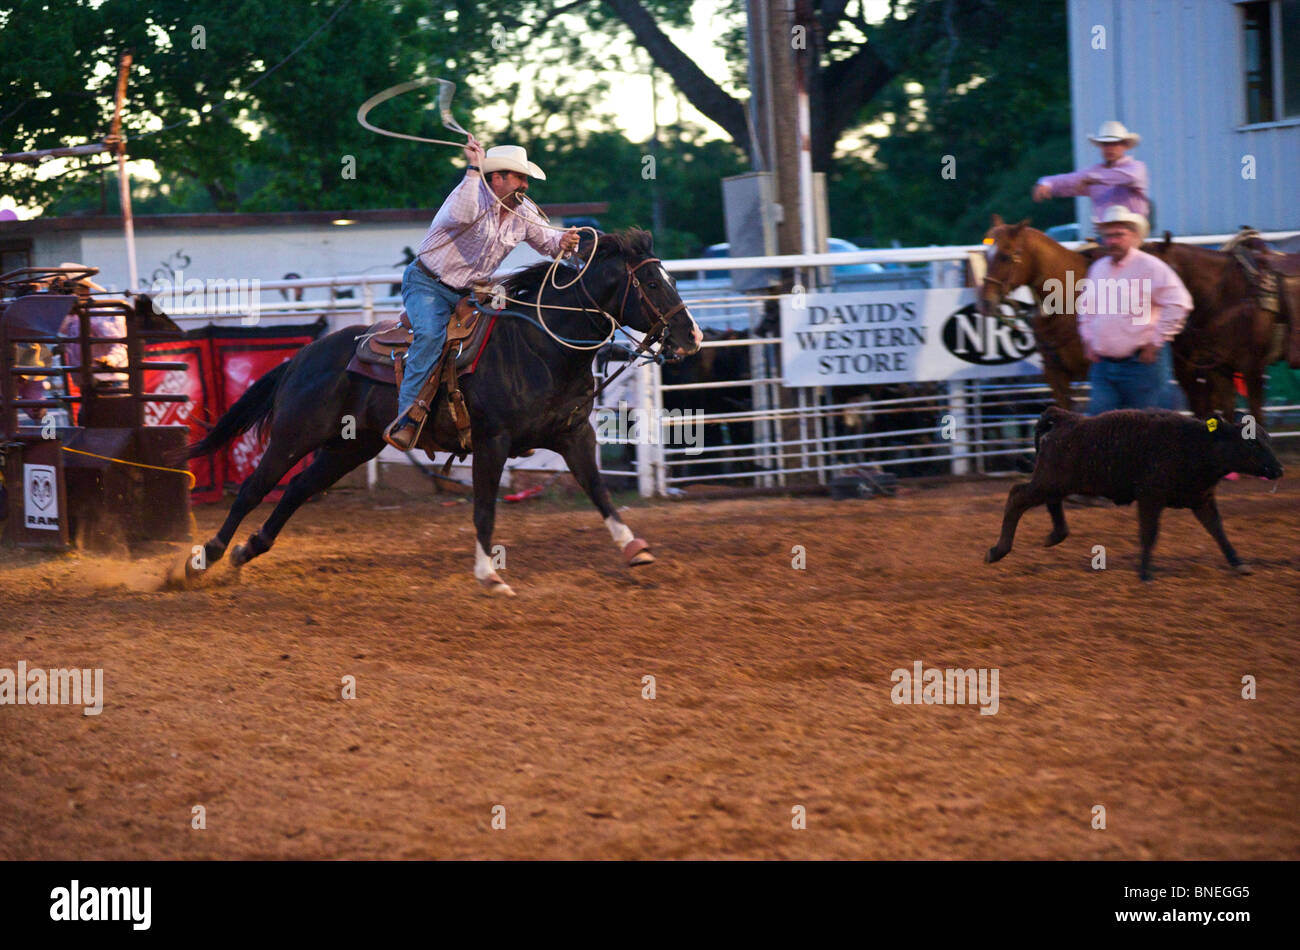 Cowboy roping calf at PRCA rodeo event  in Bridgeport, Texas, USA Stock Photo